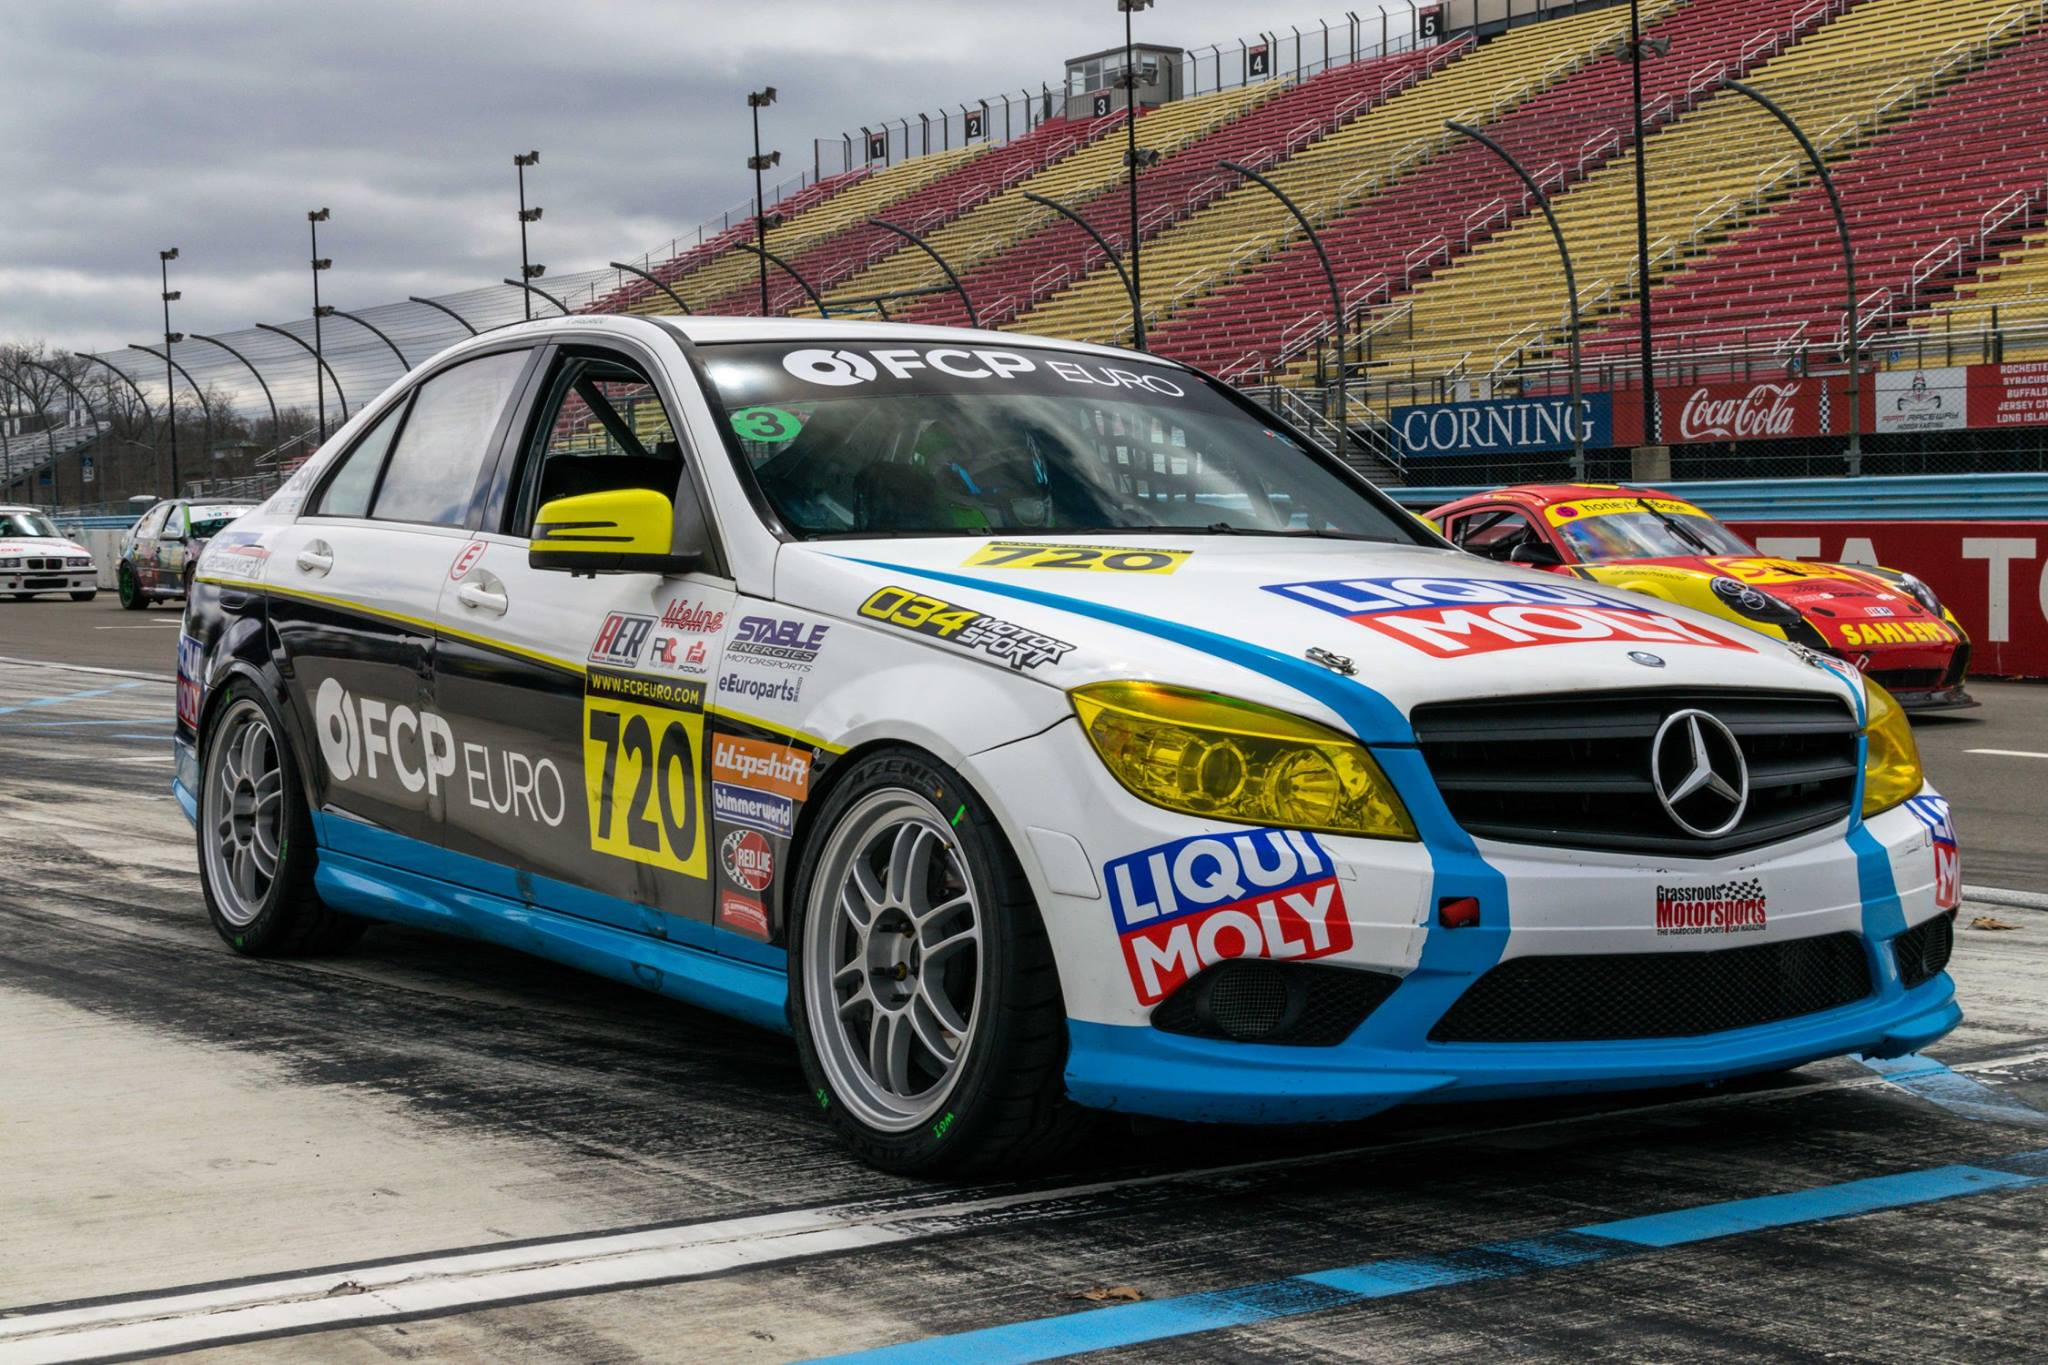 2010 Mercedes C300 Race Car 2